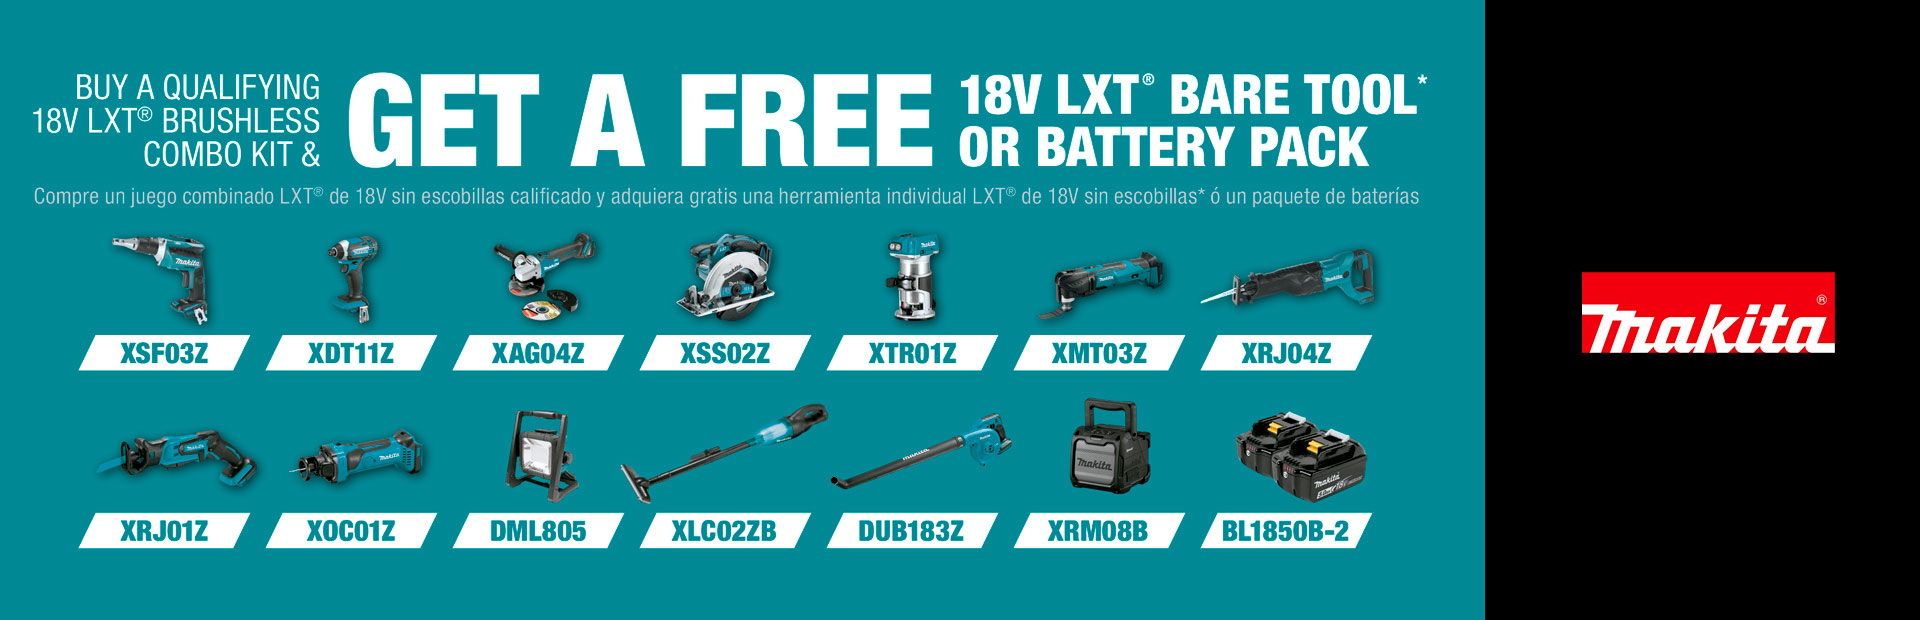 Makita: GET A FREE 18V LXT® BARE TOOL OR BATTERY PACK